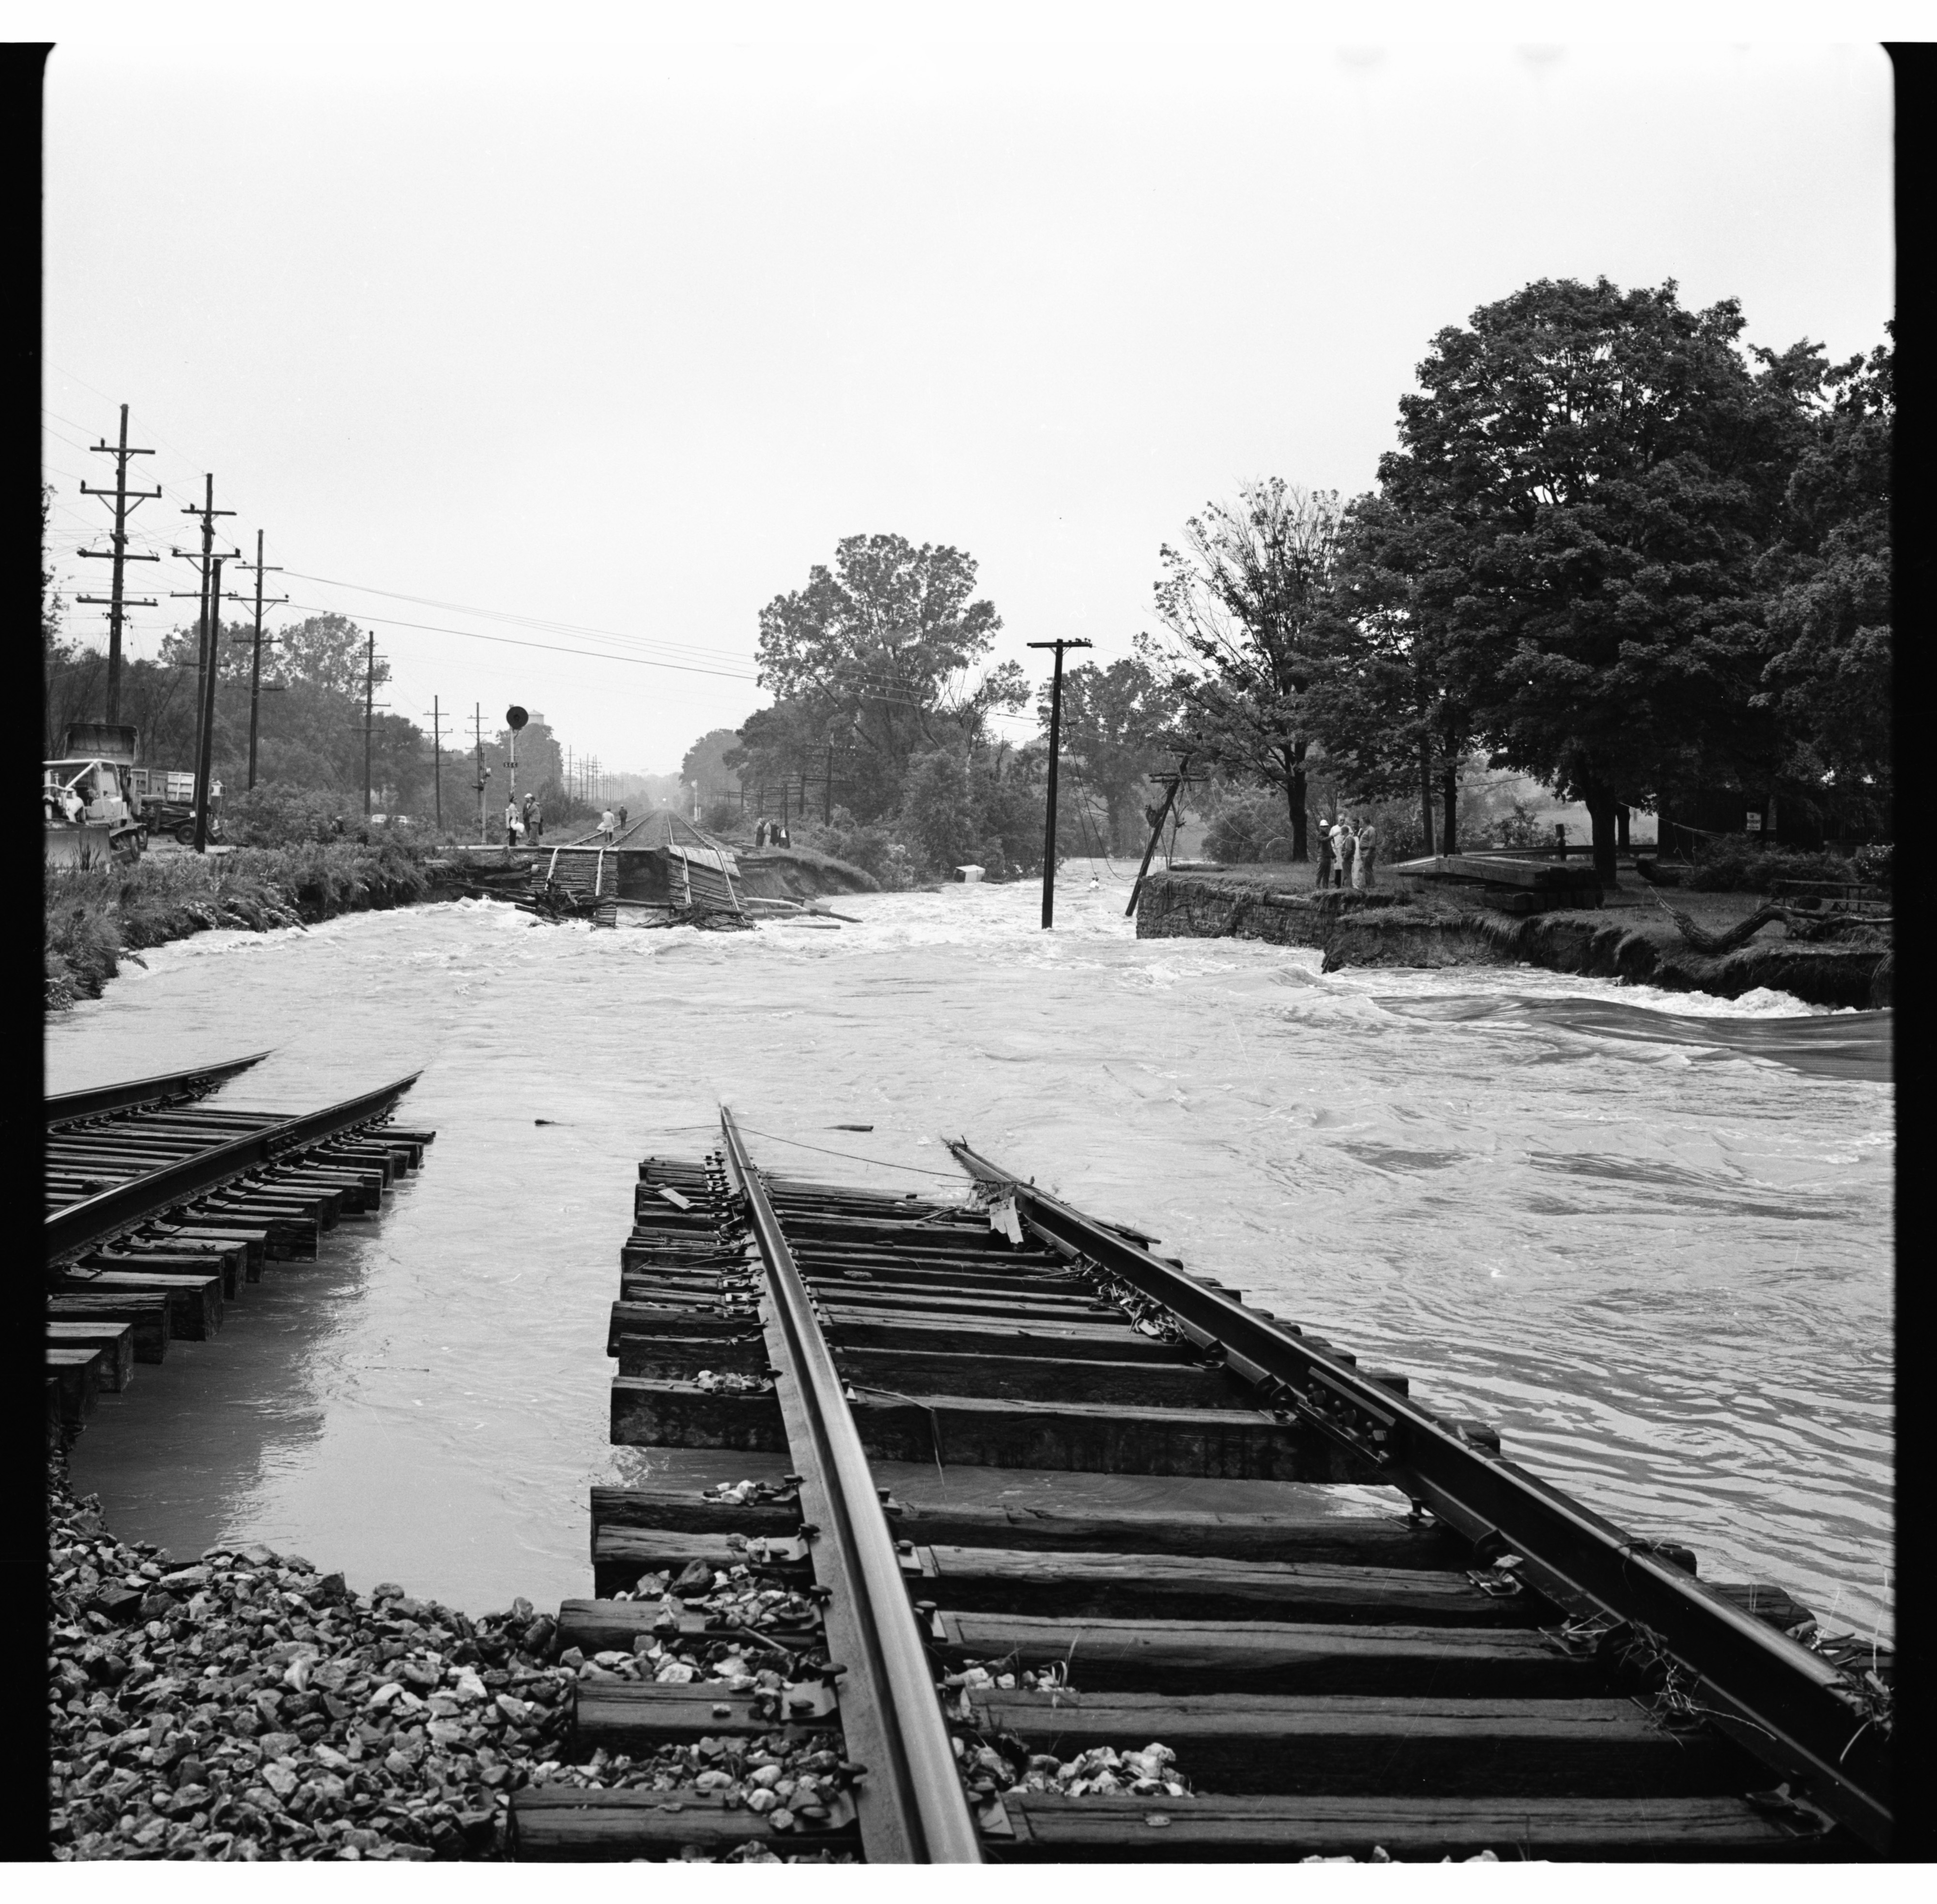 Washed Out Railroad Tracks, June 1968 Flood image